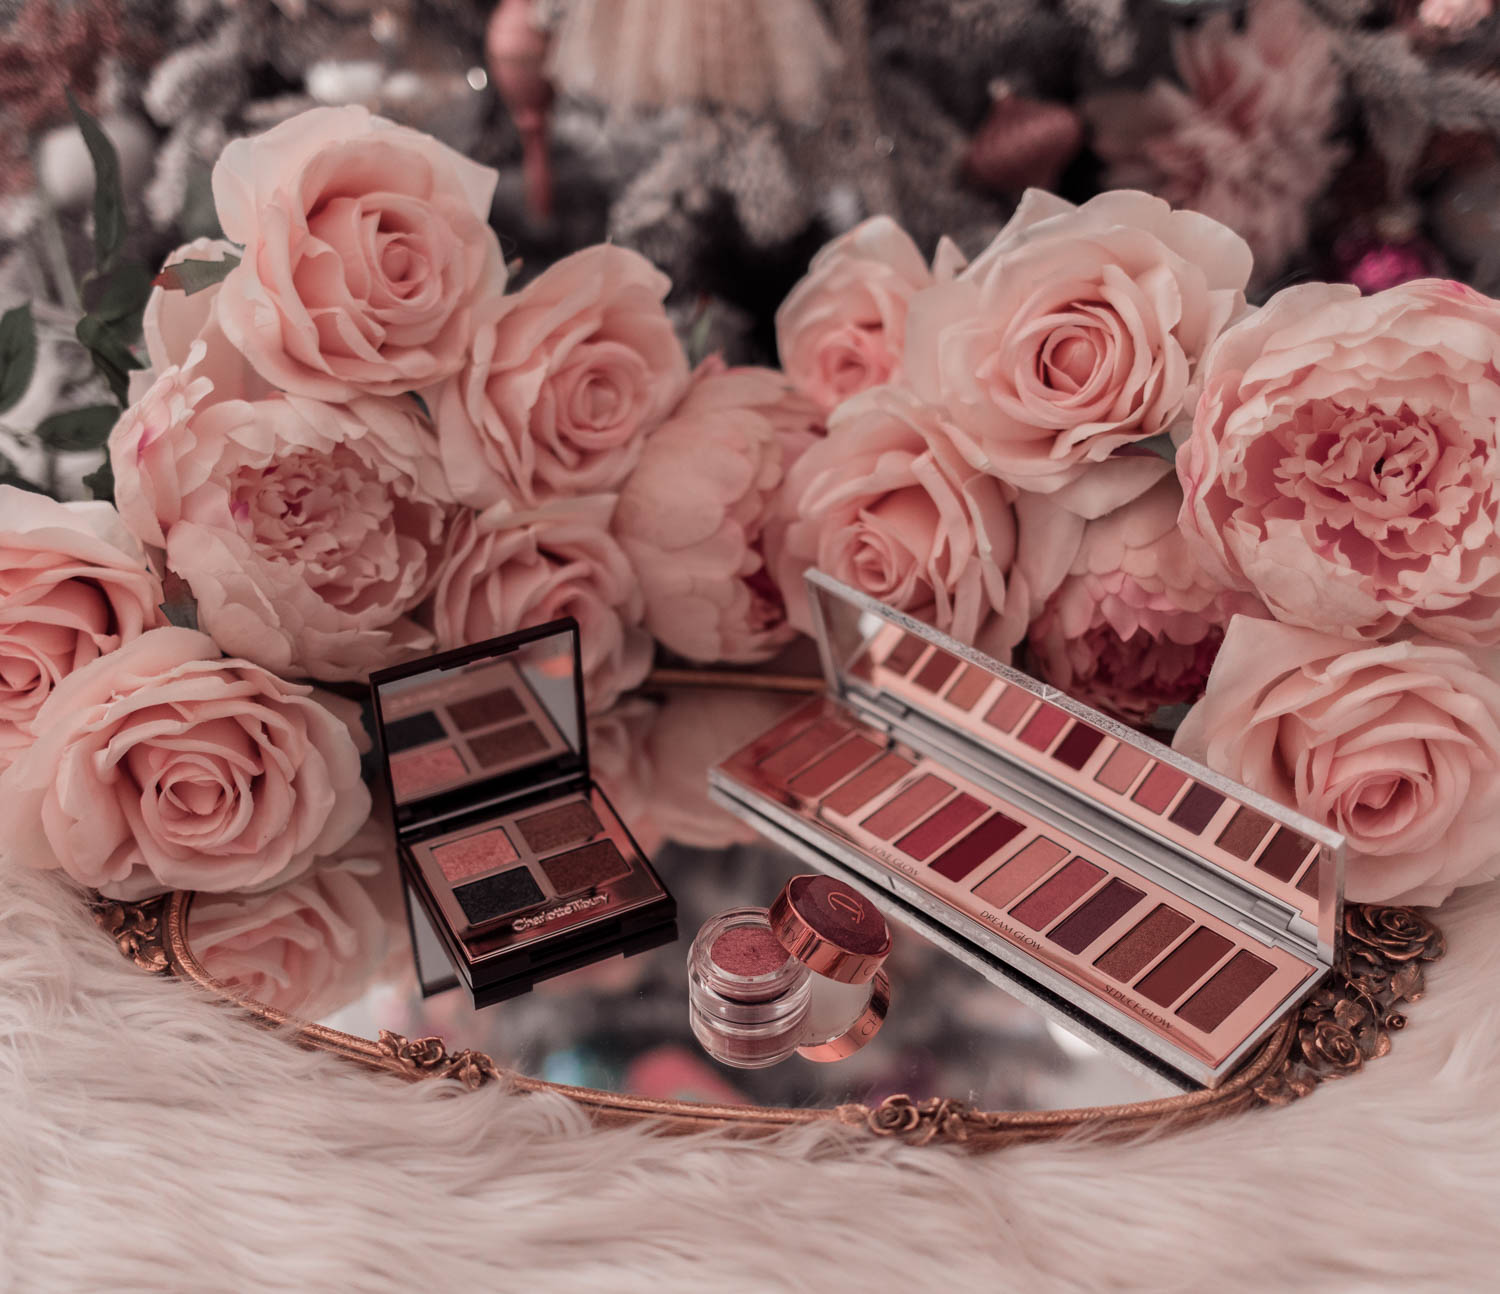 Fashion Blogger Elizabeth Hugen of Lizzie in Lace shares holiday beauty gifts to gift yourself including these glamorous Charlotte Tilbury eye shadow palettes